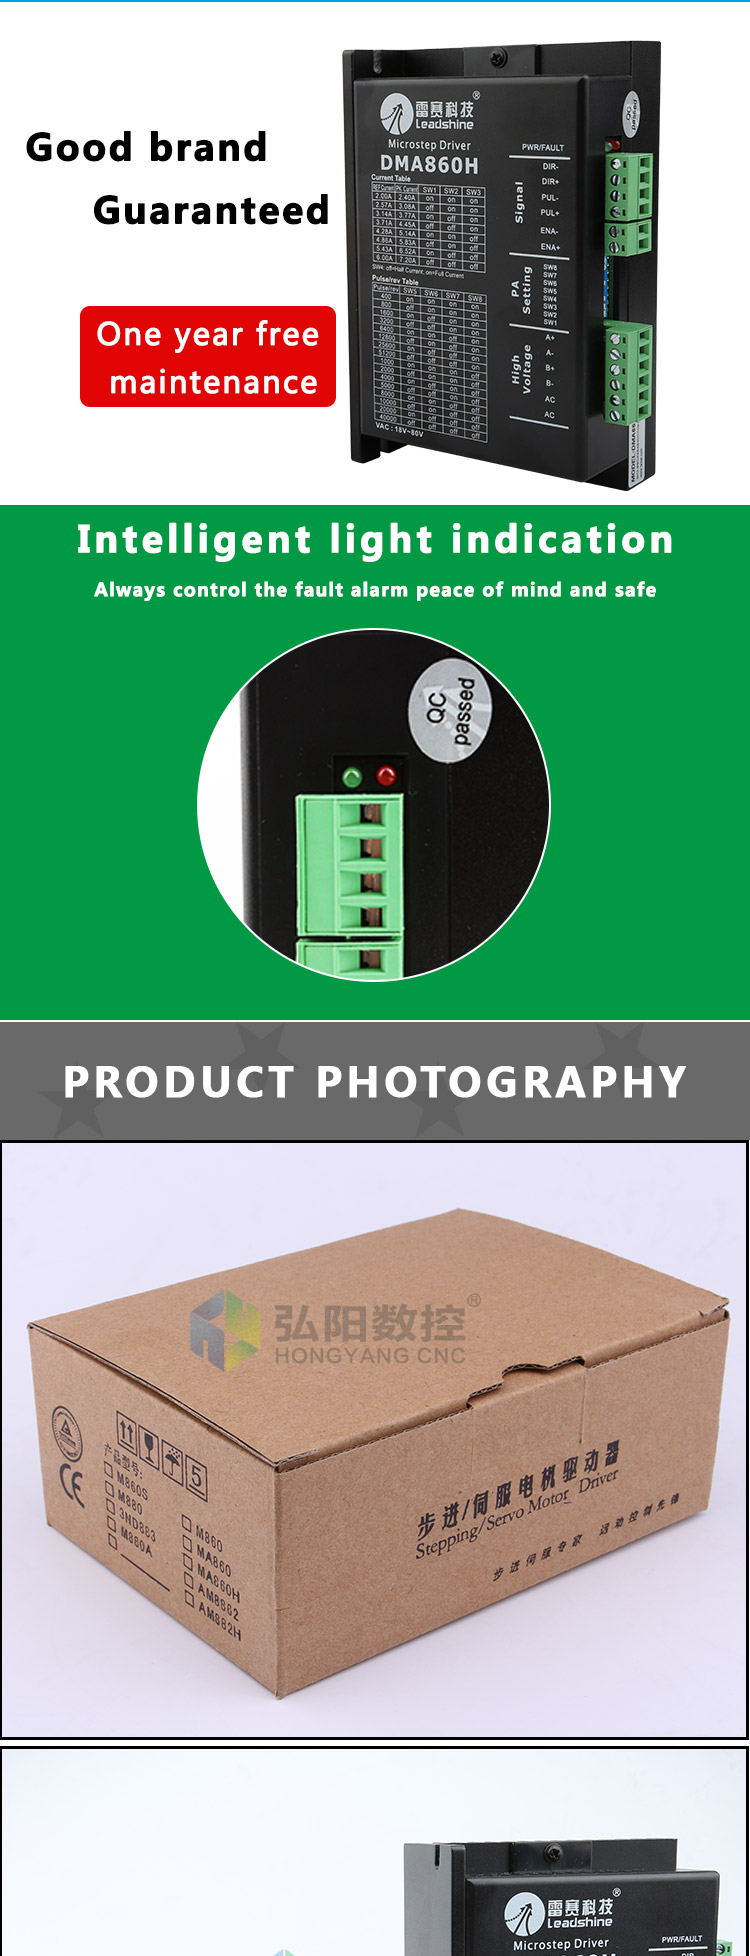 Hongyang Groothandel Cnc Router Originele Leadshine Dma860h Driver 18v-80vdc 2.4a-7.2a Microstep Driver Stap Motor Driver